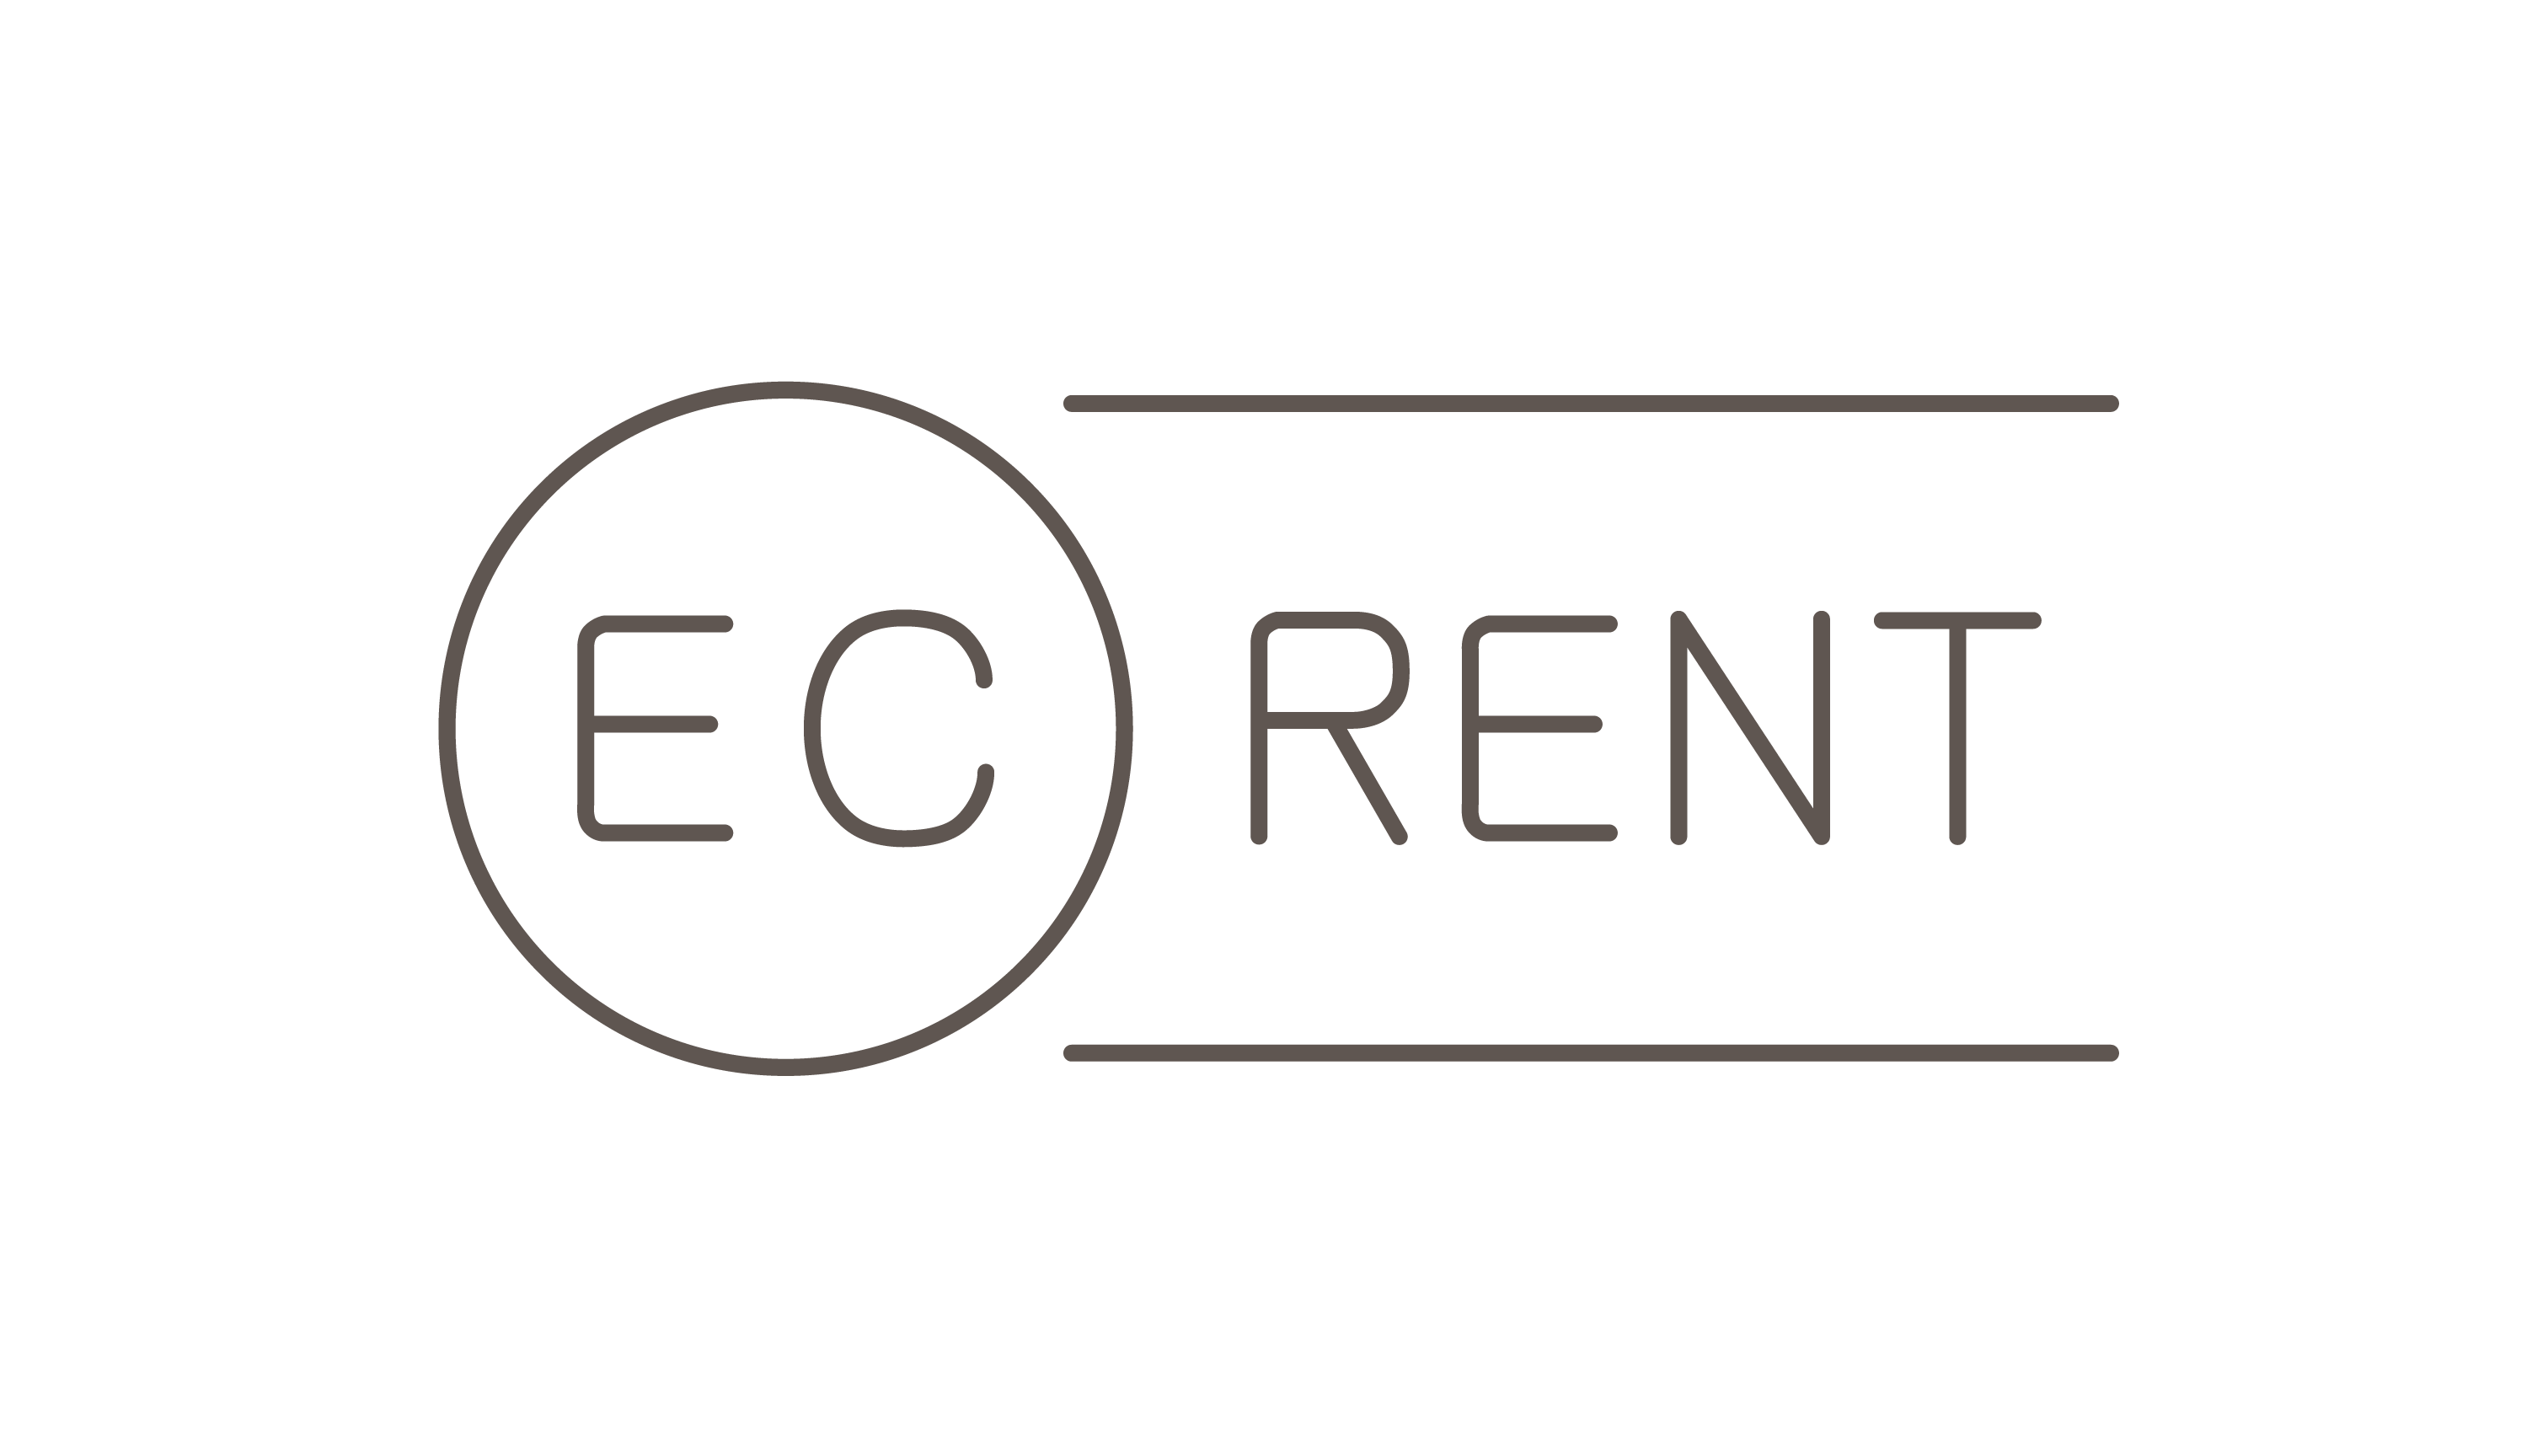 EC-Rent: Renting the Future